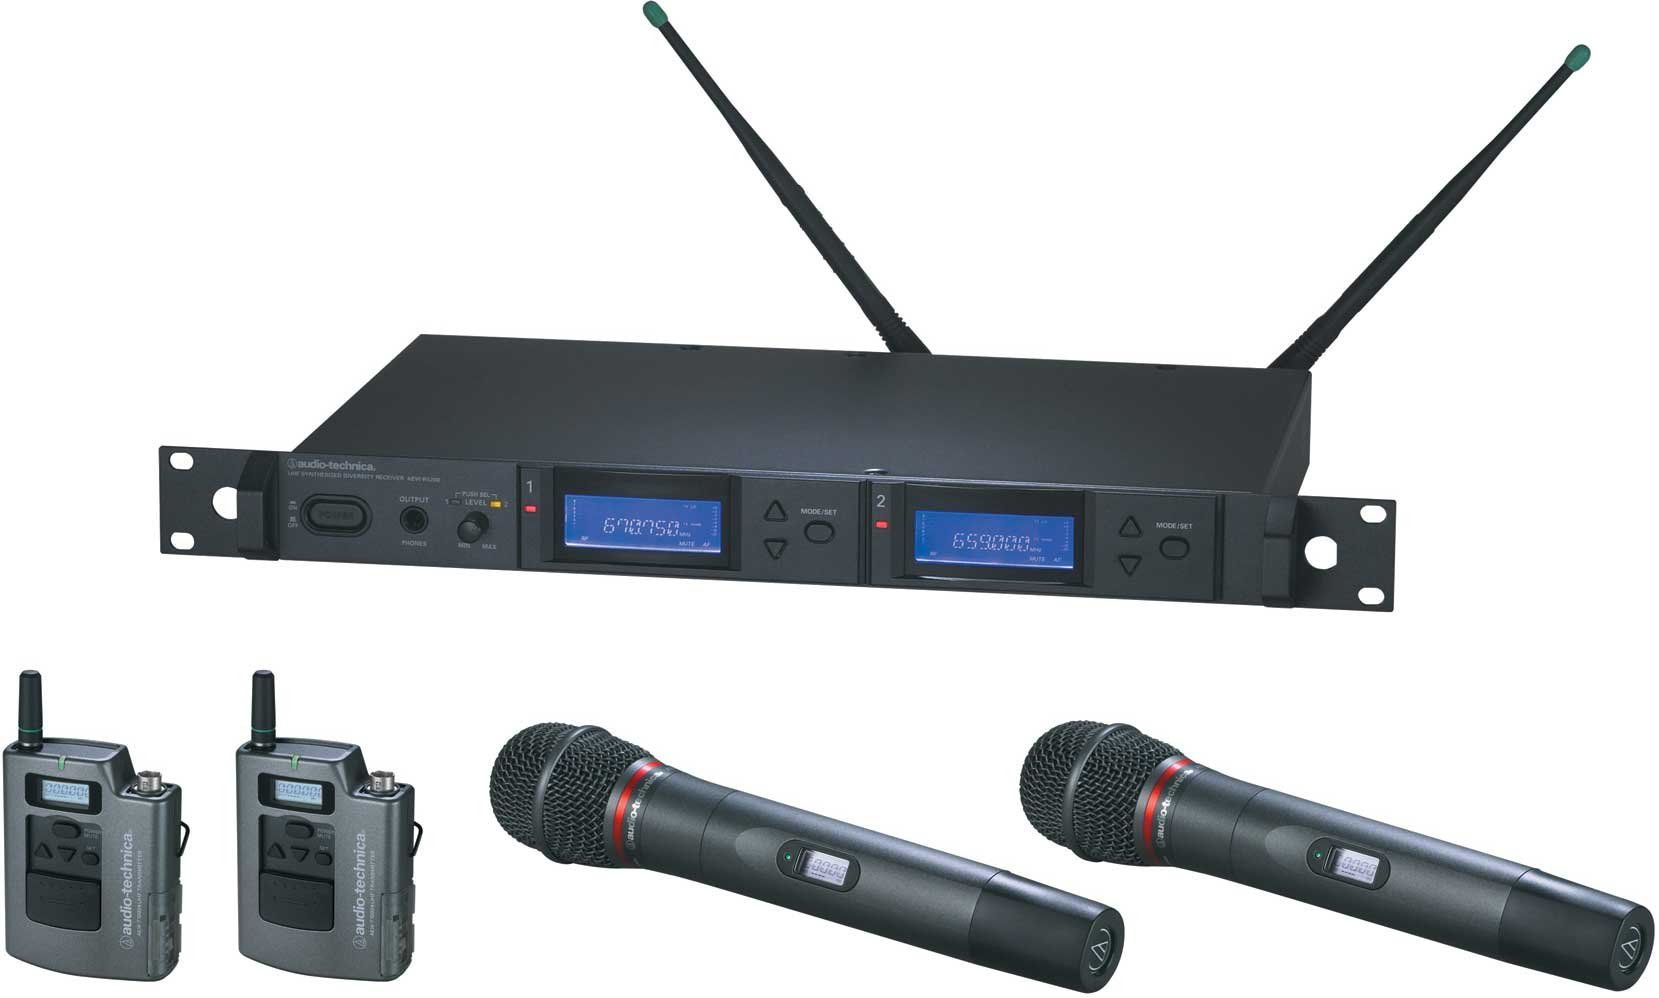 Wireless Microphone System with 2 x Bodypack Transmitters & 2 x AEW-T4100a Cardioid Dynamic Mic/Transmitter, UHF Band C: 541.500 MHz to 566.375 MHz